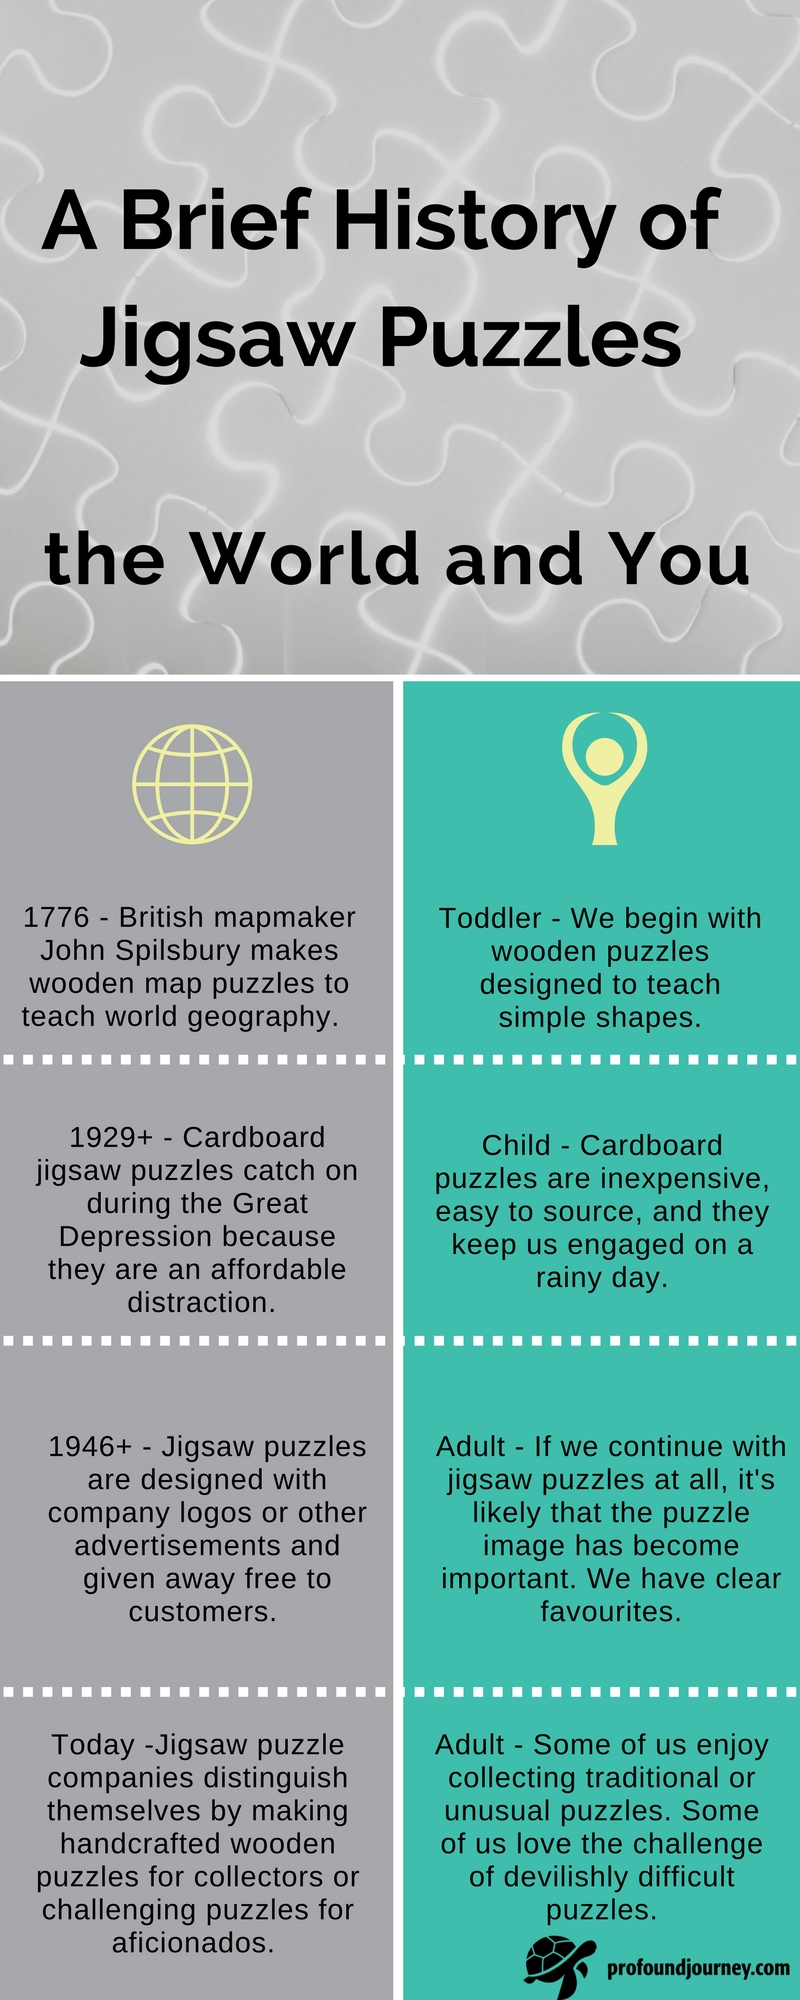 infographic showing parallels between history of jigsaw puzzles in the world and individual's history with jigsaw puzzles